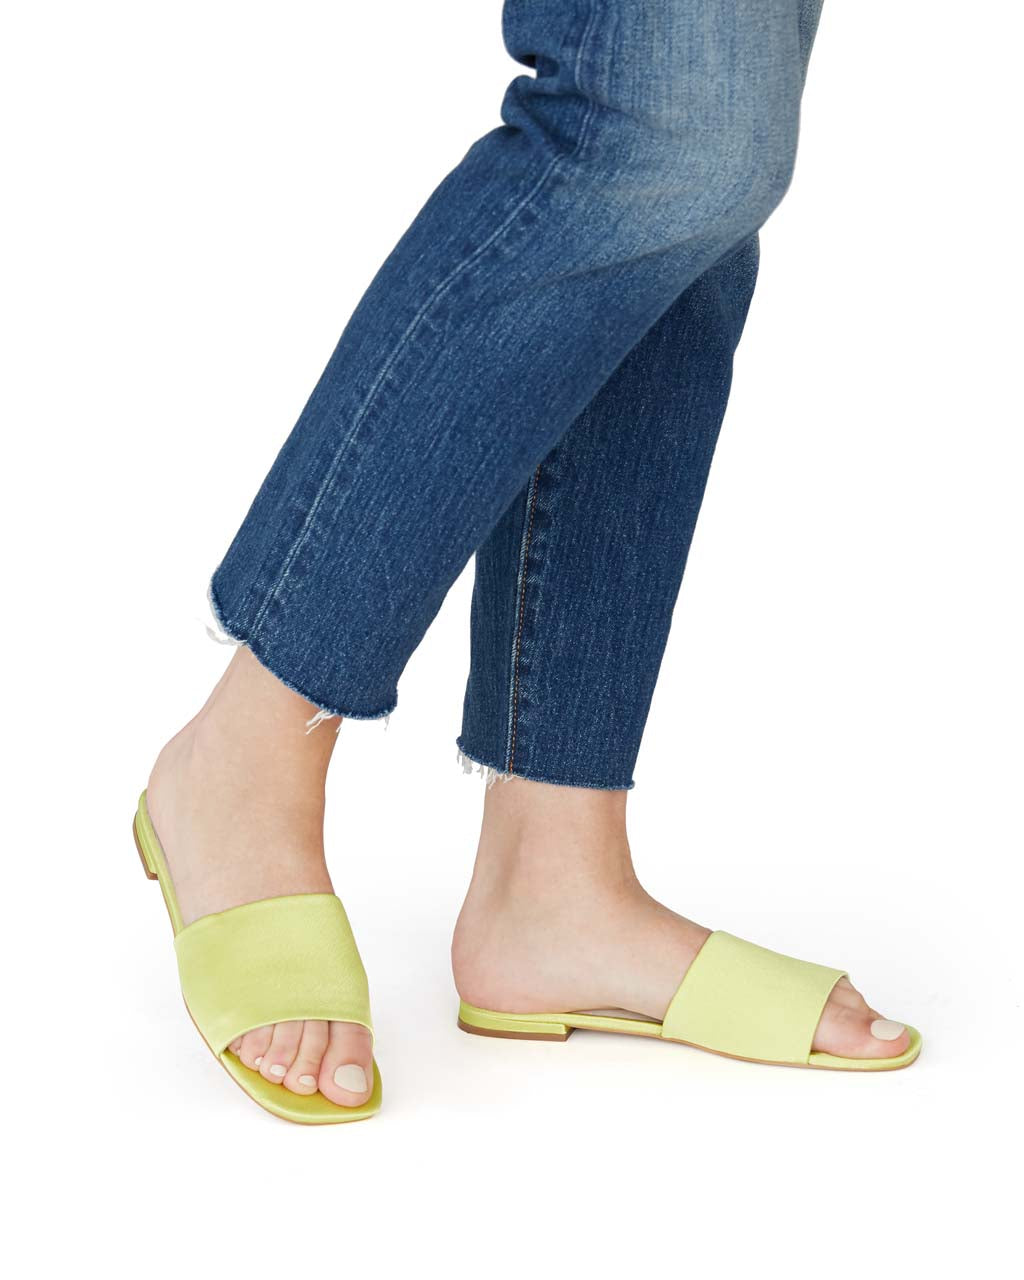 neon yellow wide strap sandals shown on model